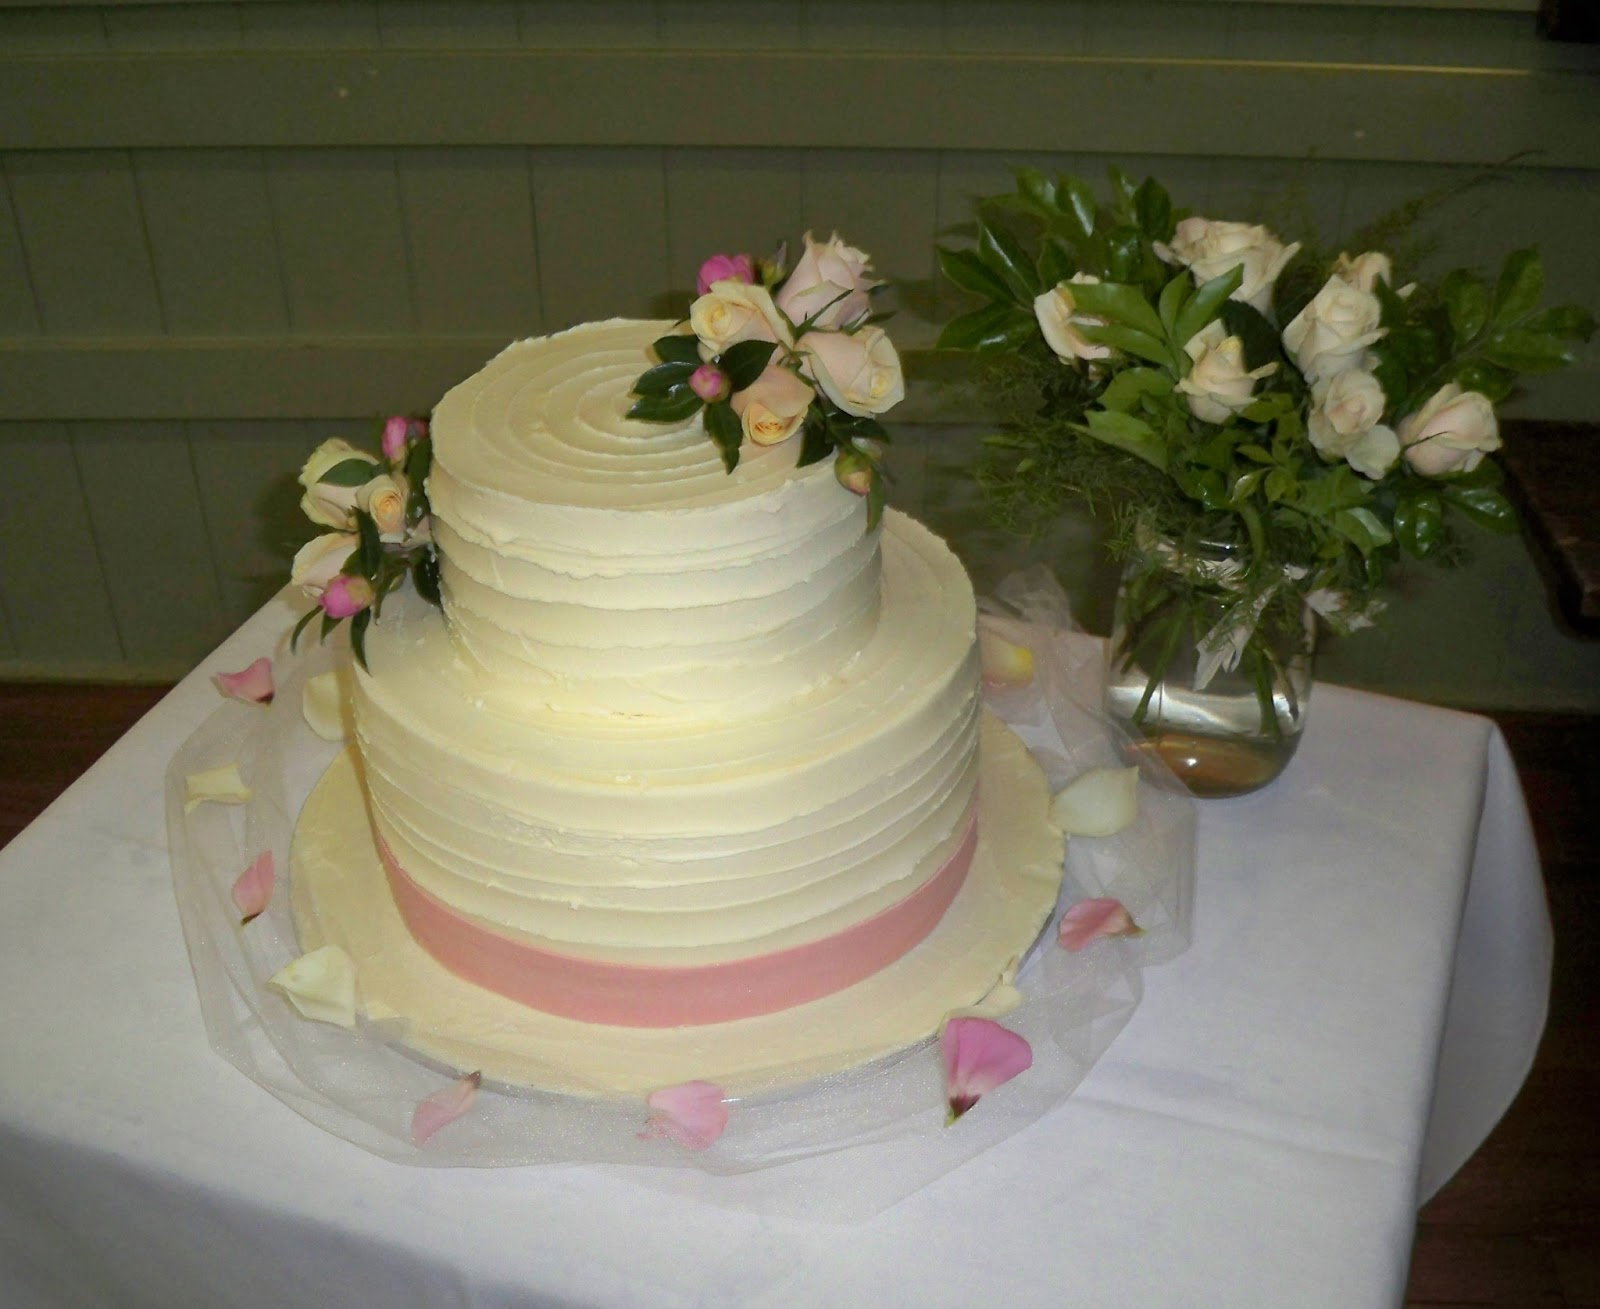 2 Tier Wedding Cake Images